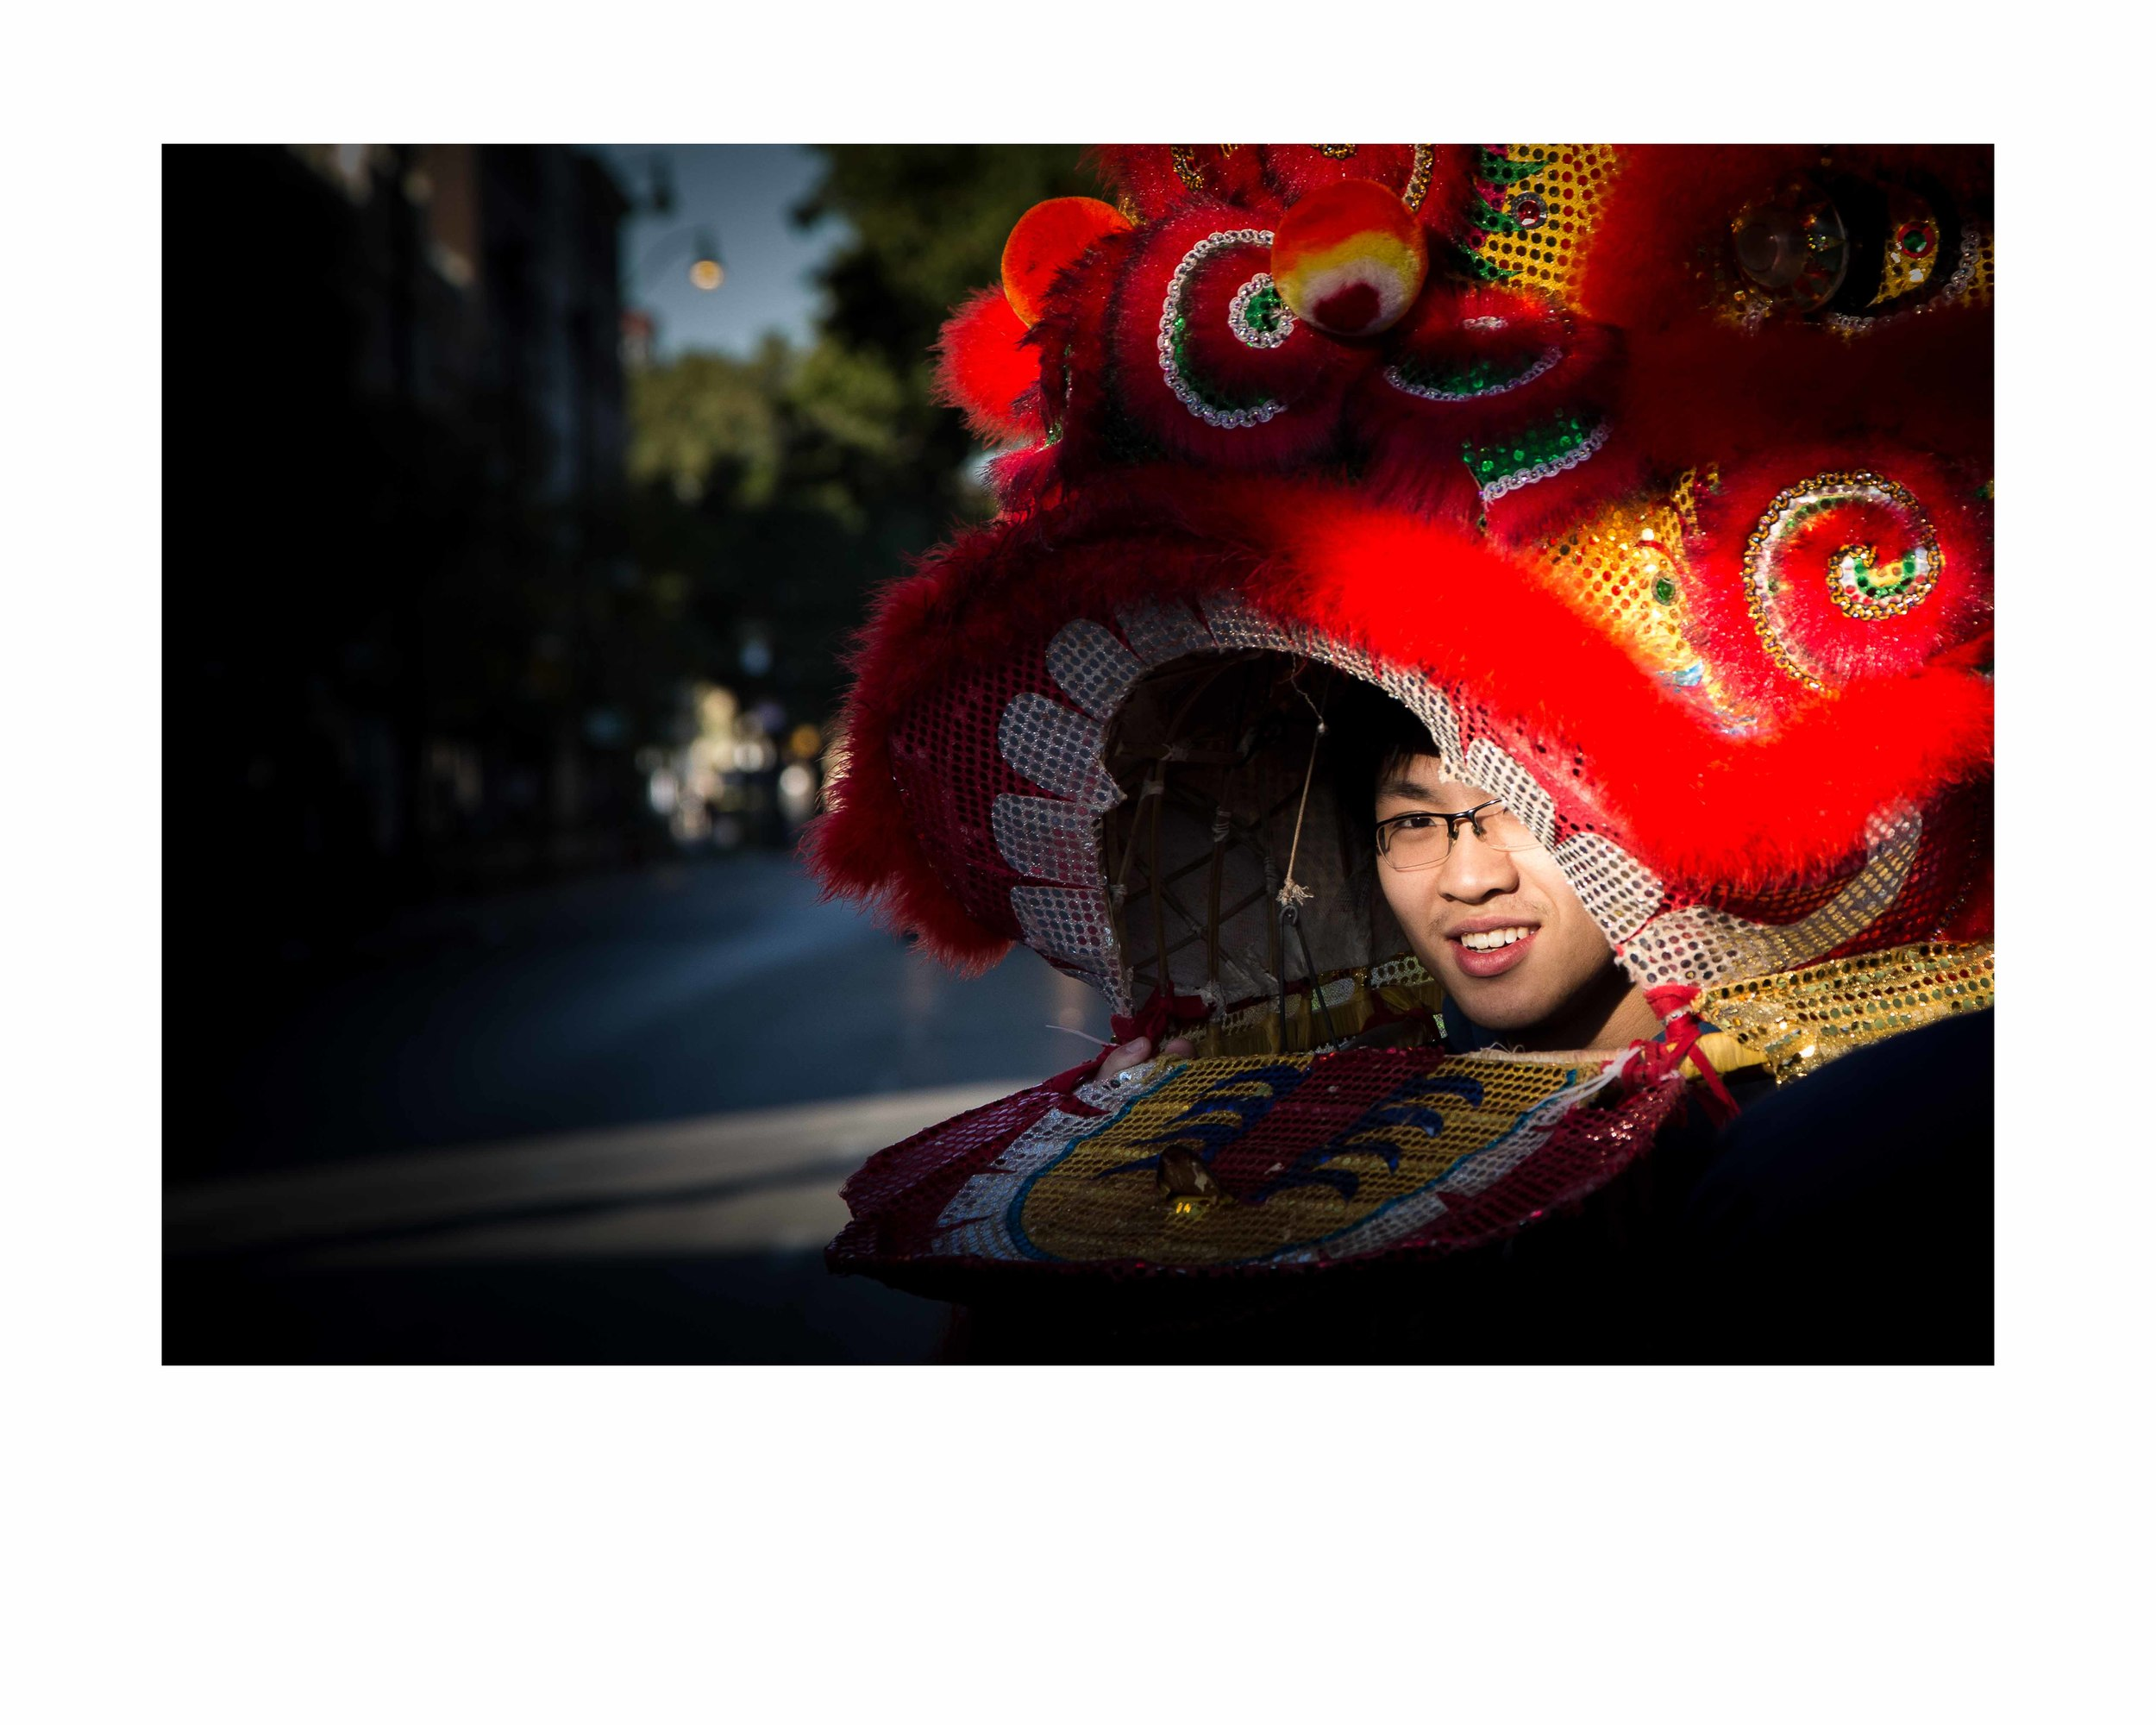 Lion Dancer 1. 16x20 framed. $150